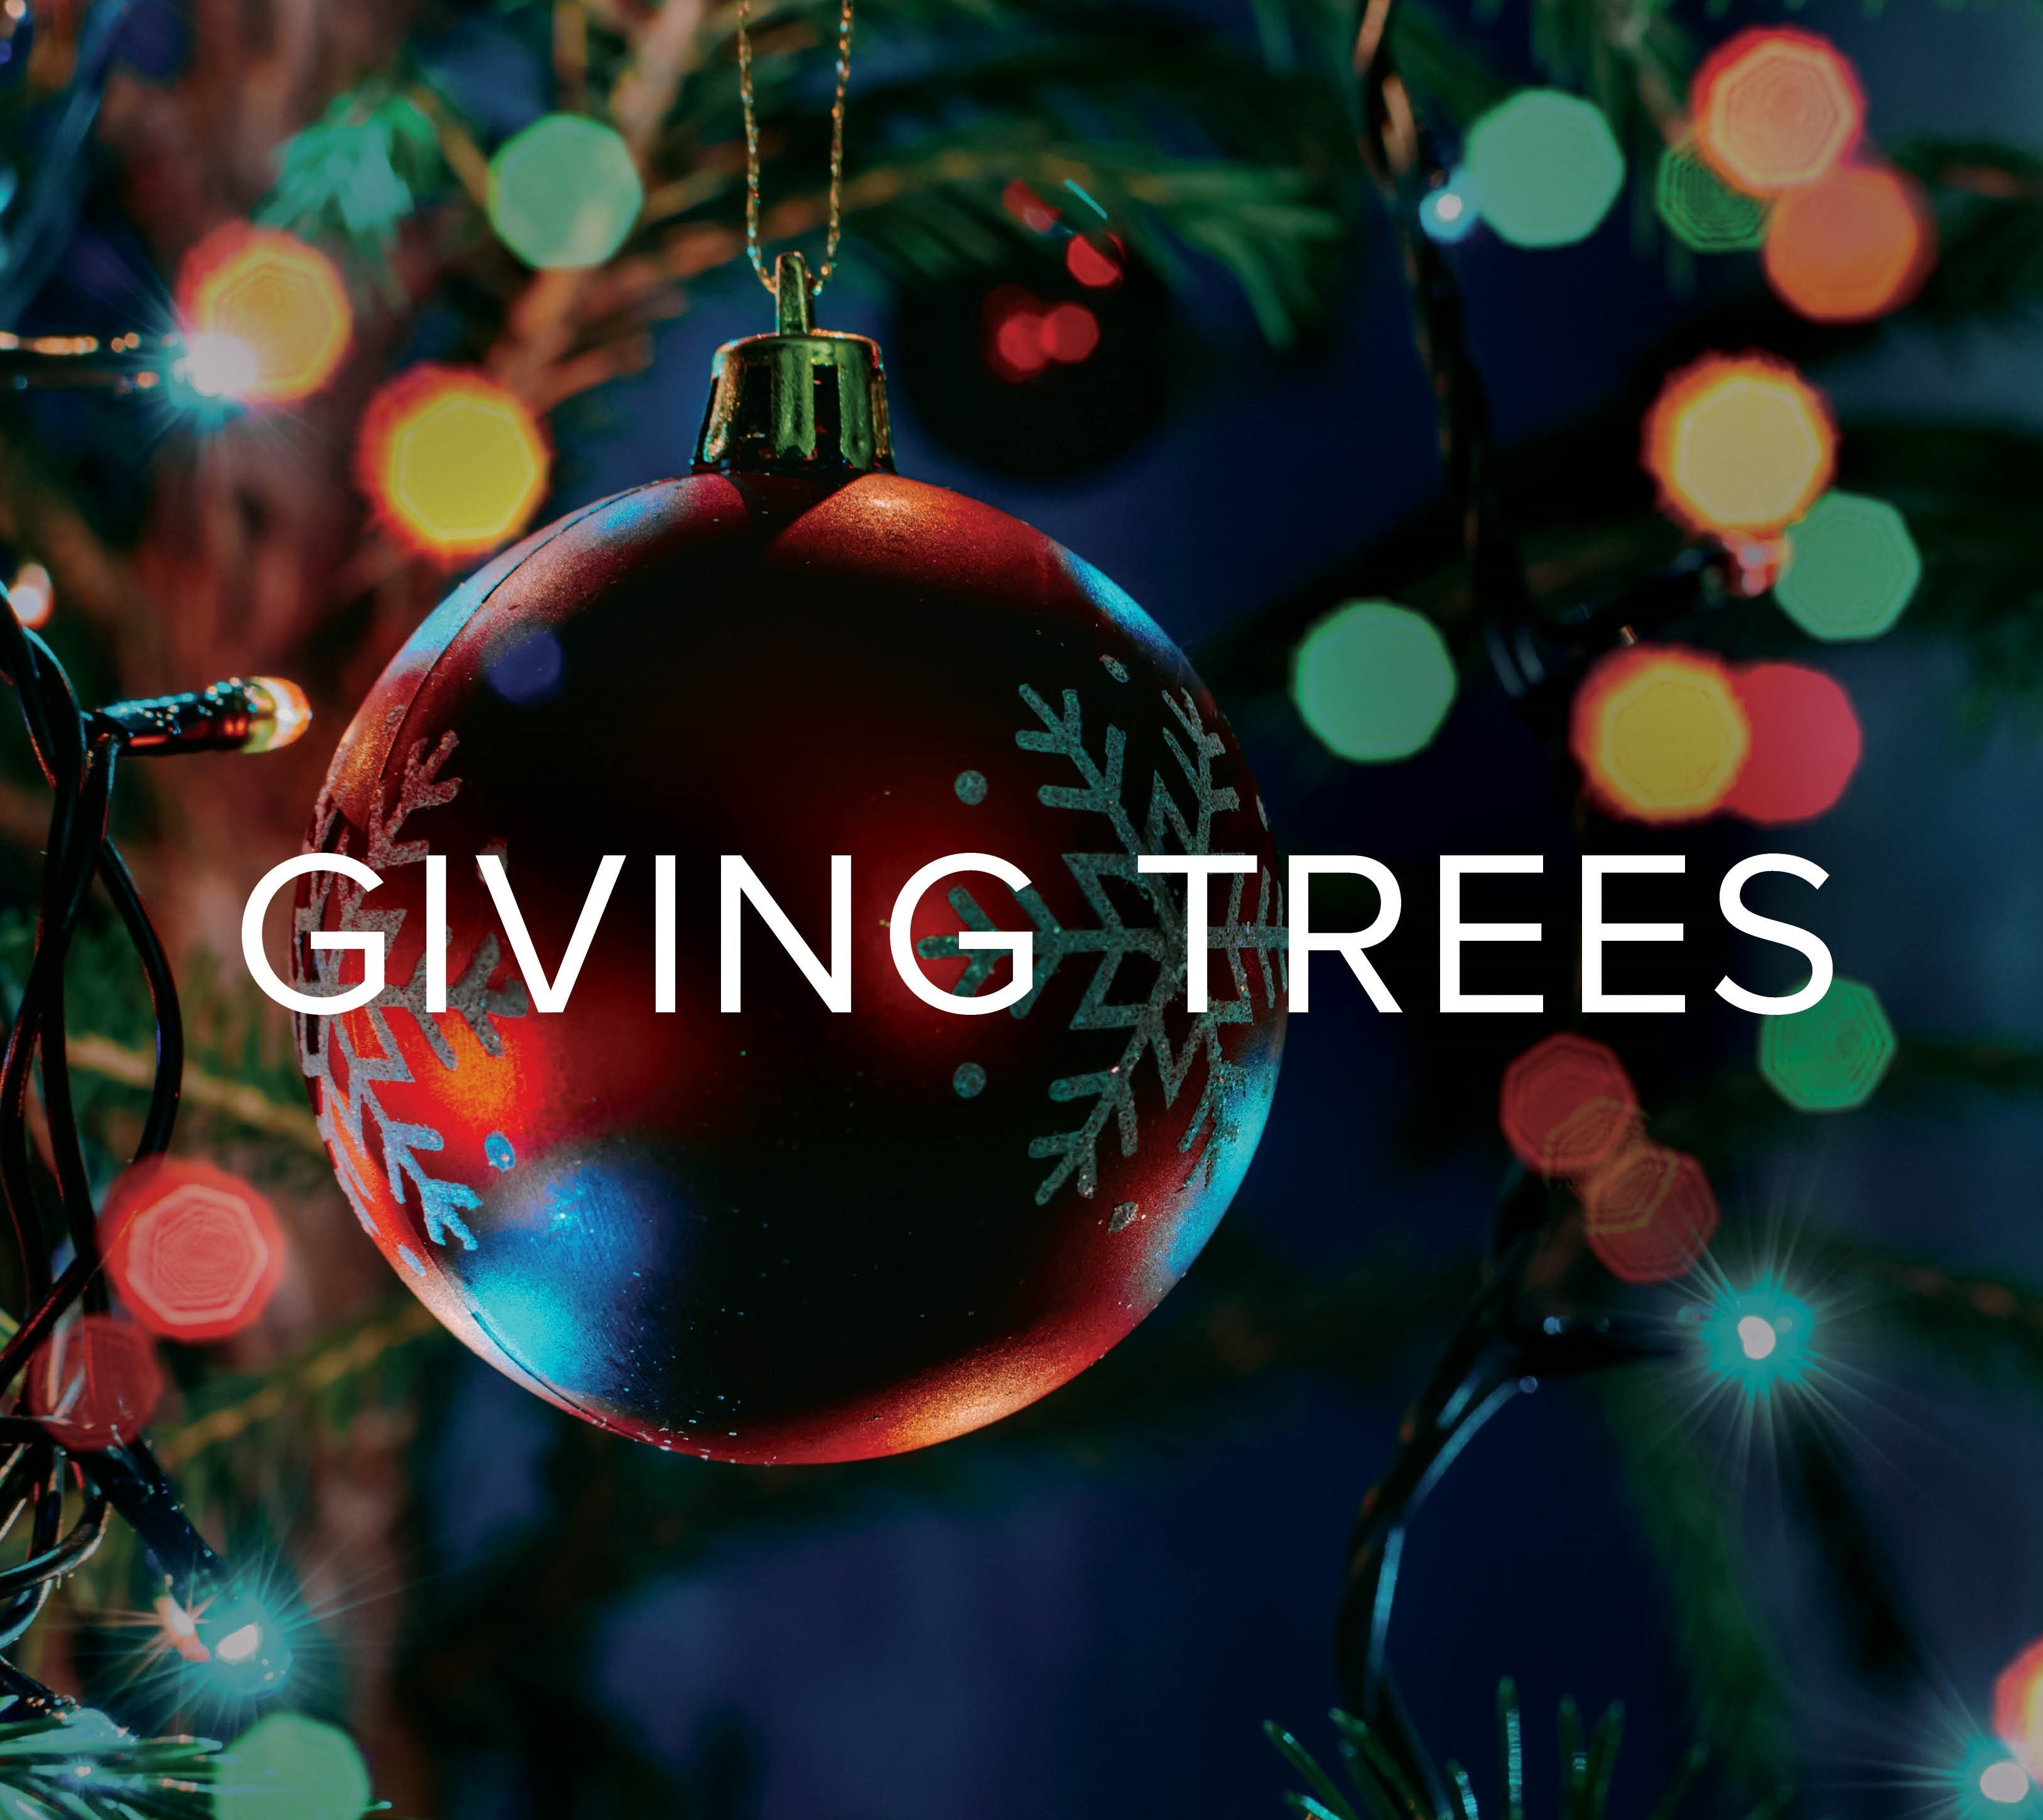 Giving Trees